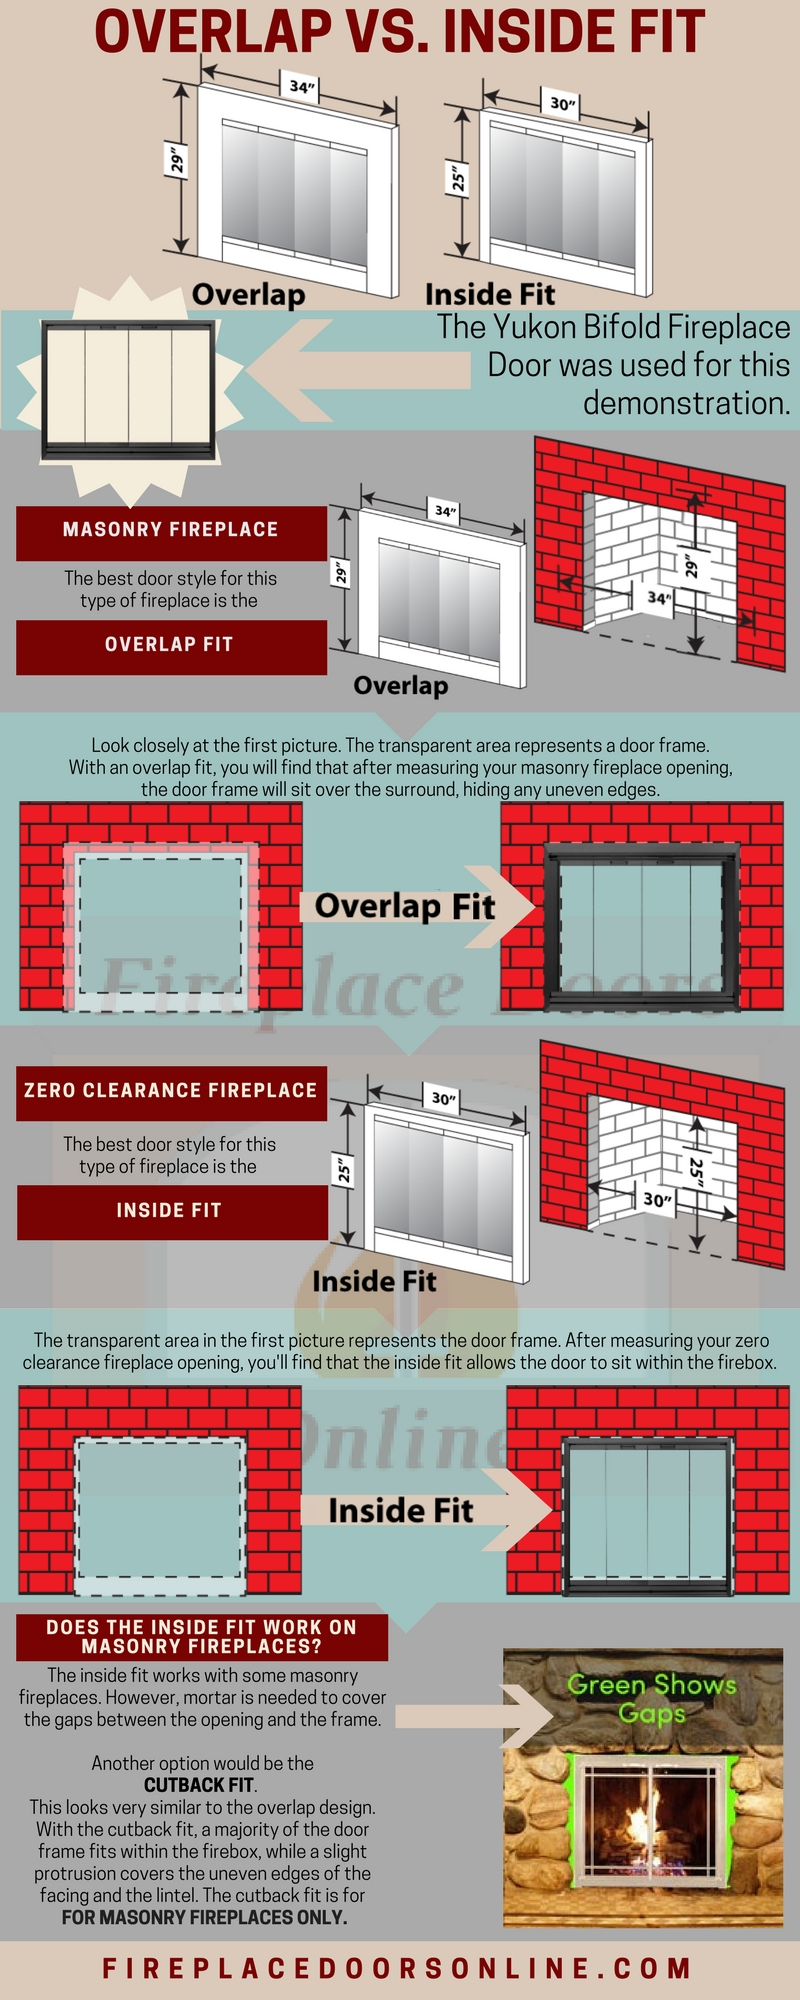 Fireplace Door Fit Infographic